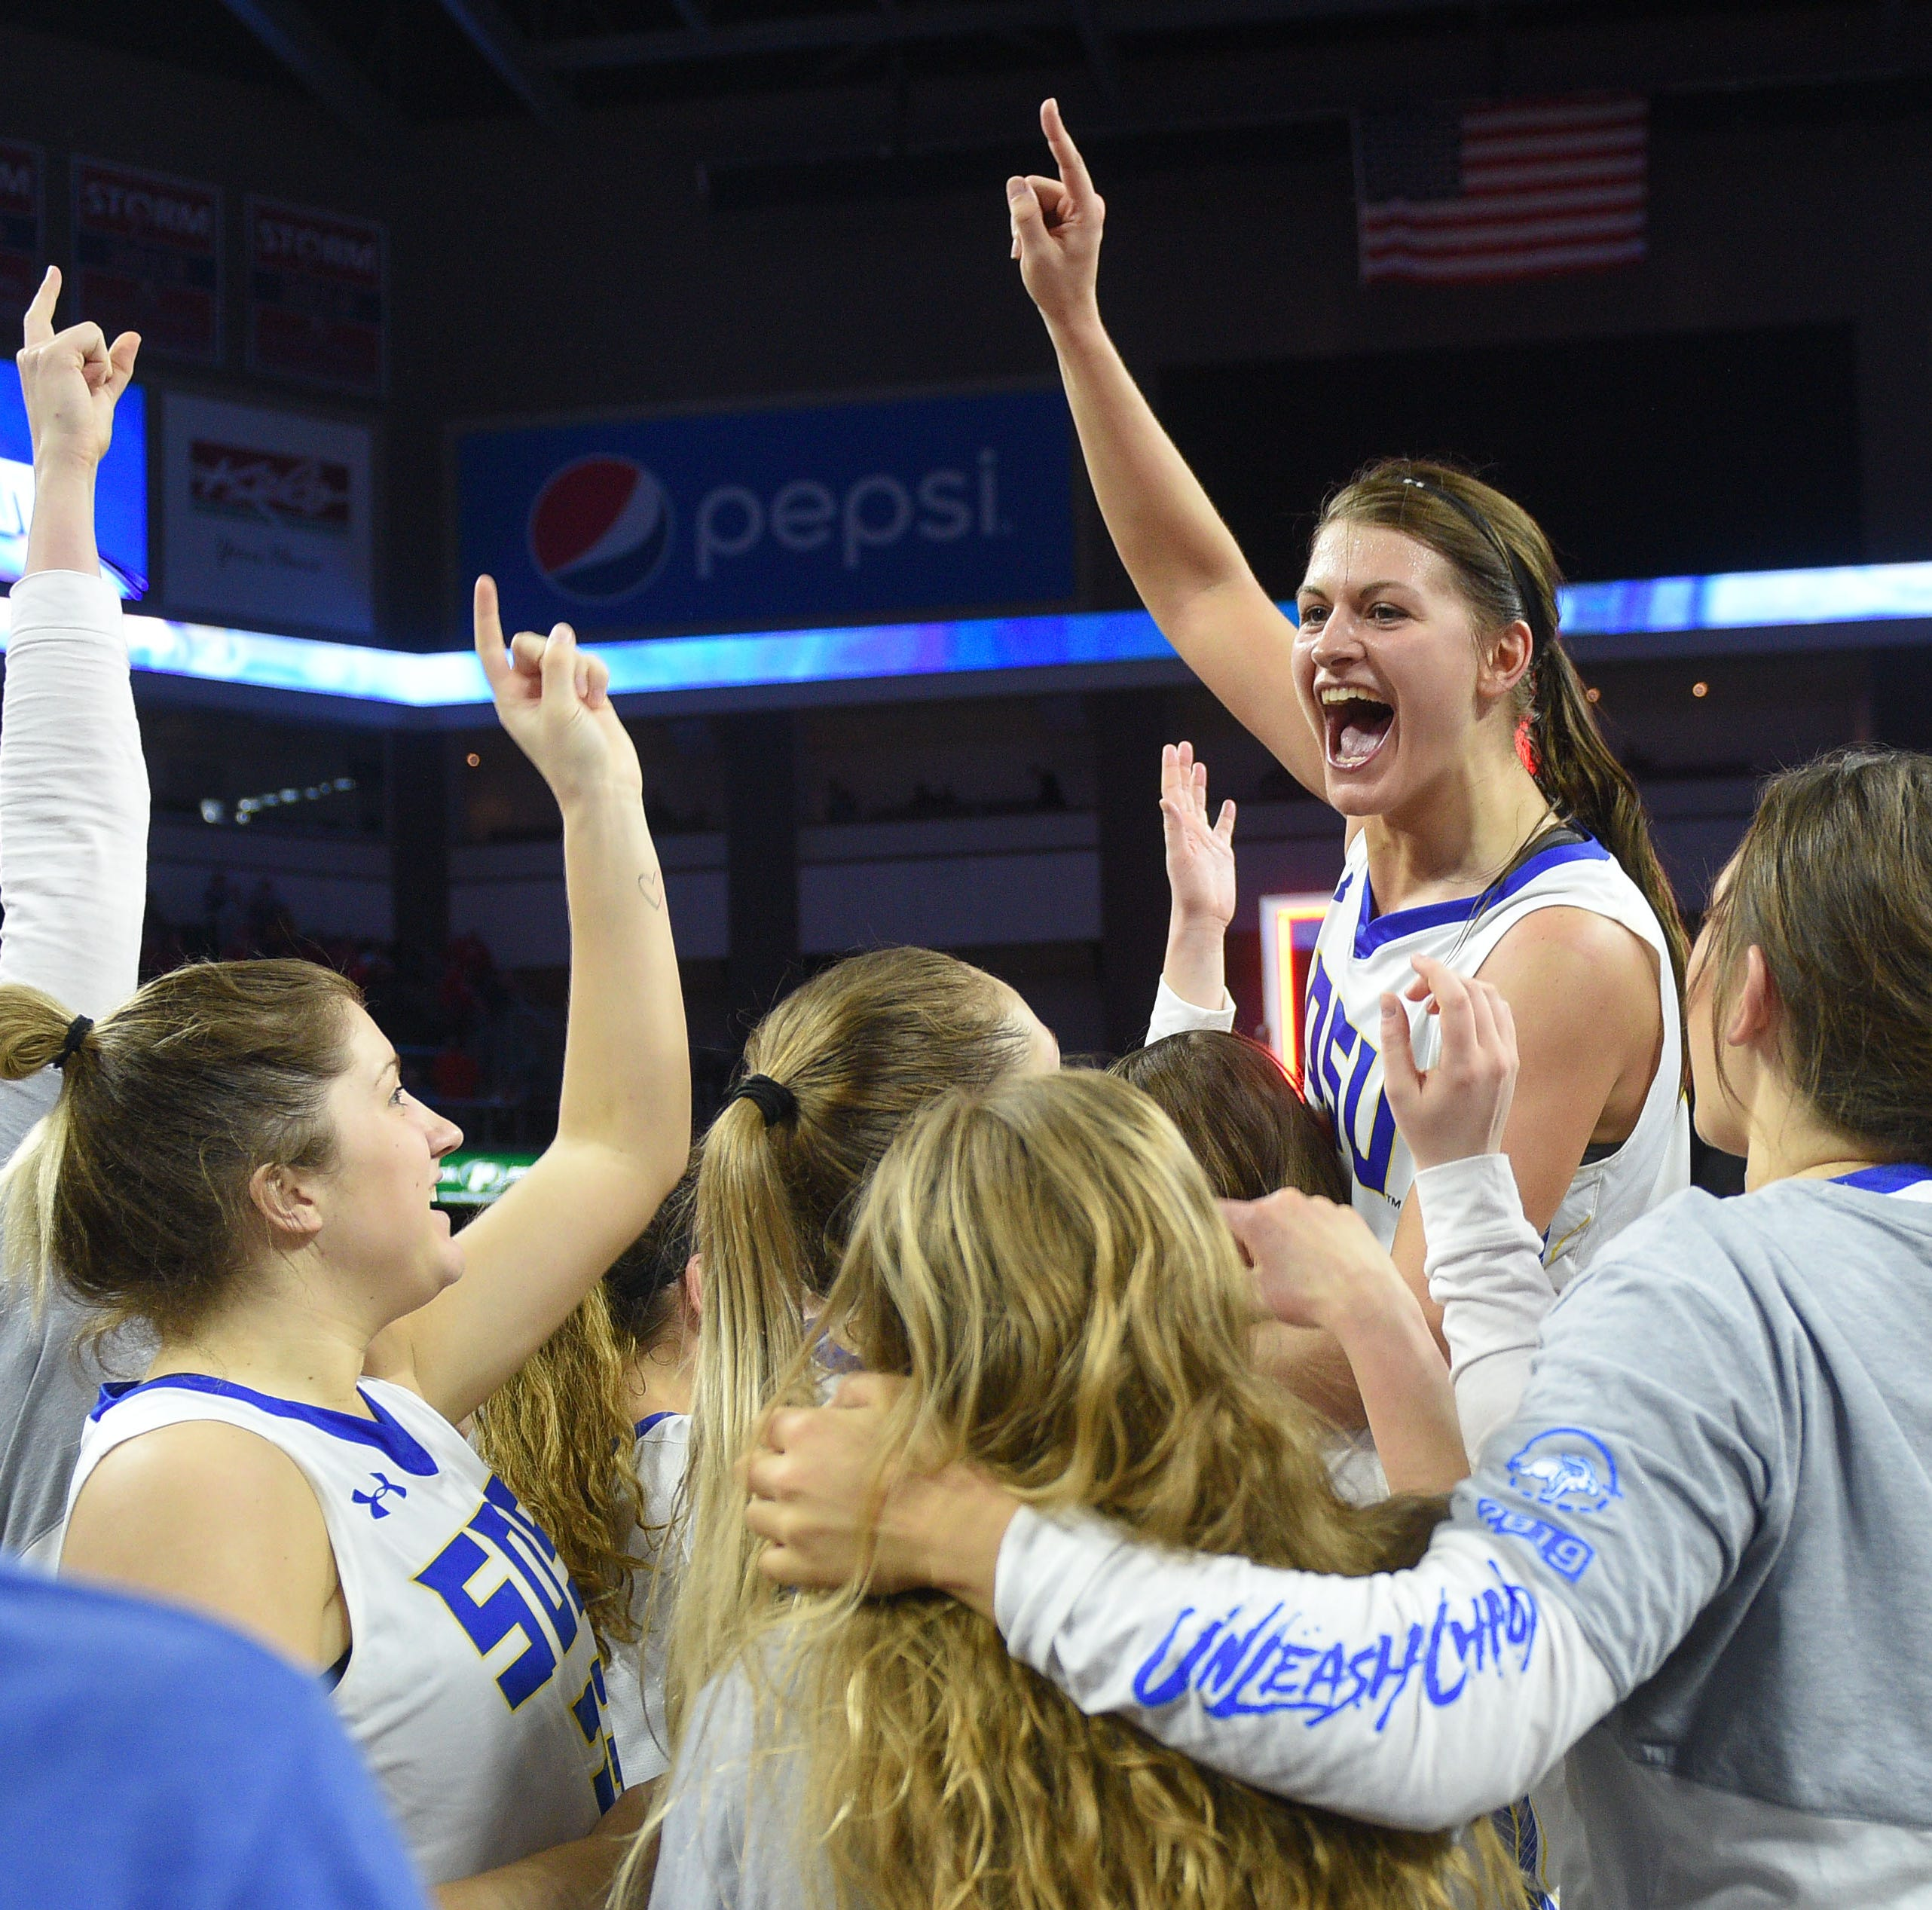 Whitney: Macy Miller makes history by seizing the moment